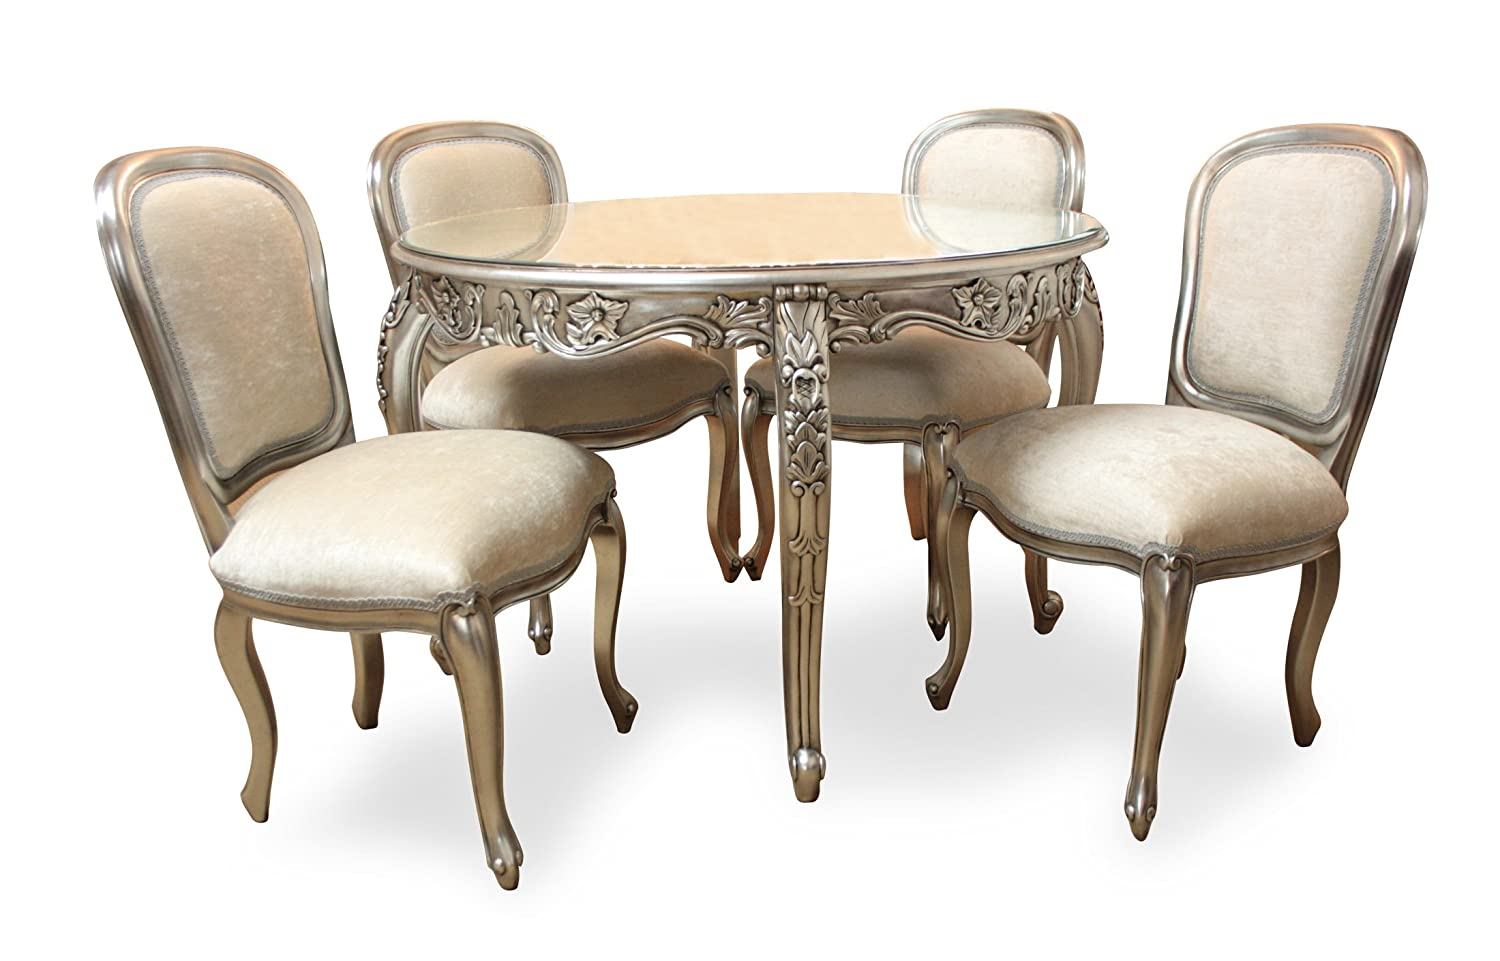 French furniture uk - French Style Furniture Carved Round Dining Table And 4 Chairs Silver Amazon Co Uk Kitchen Home